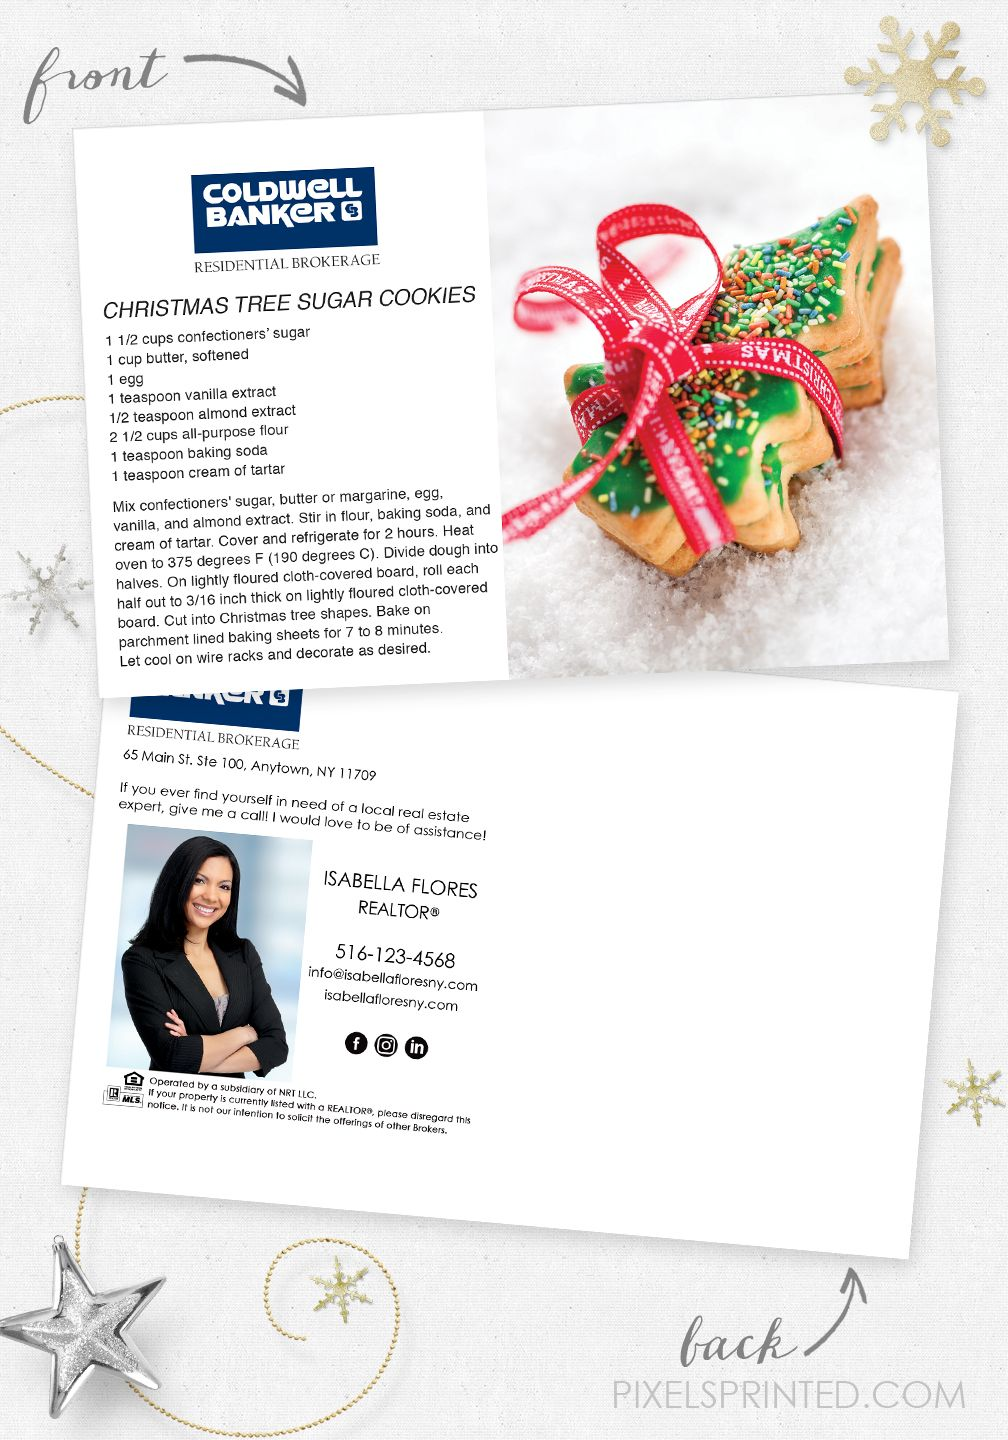 Coldwell Banker holiday recipe postcards in 2020 Card